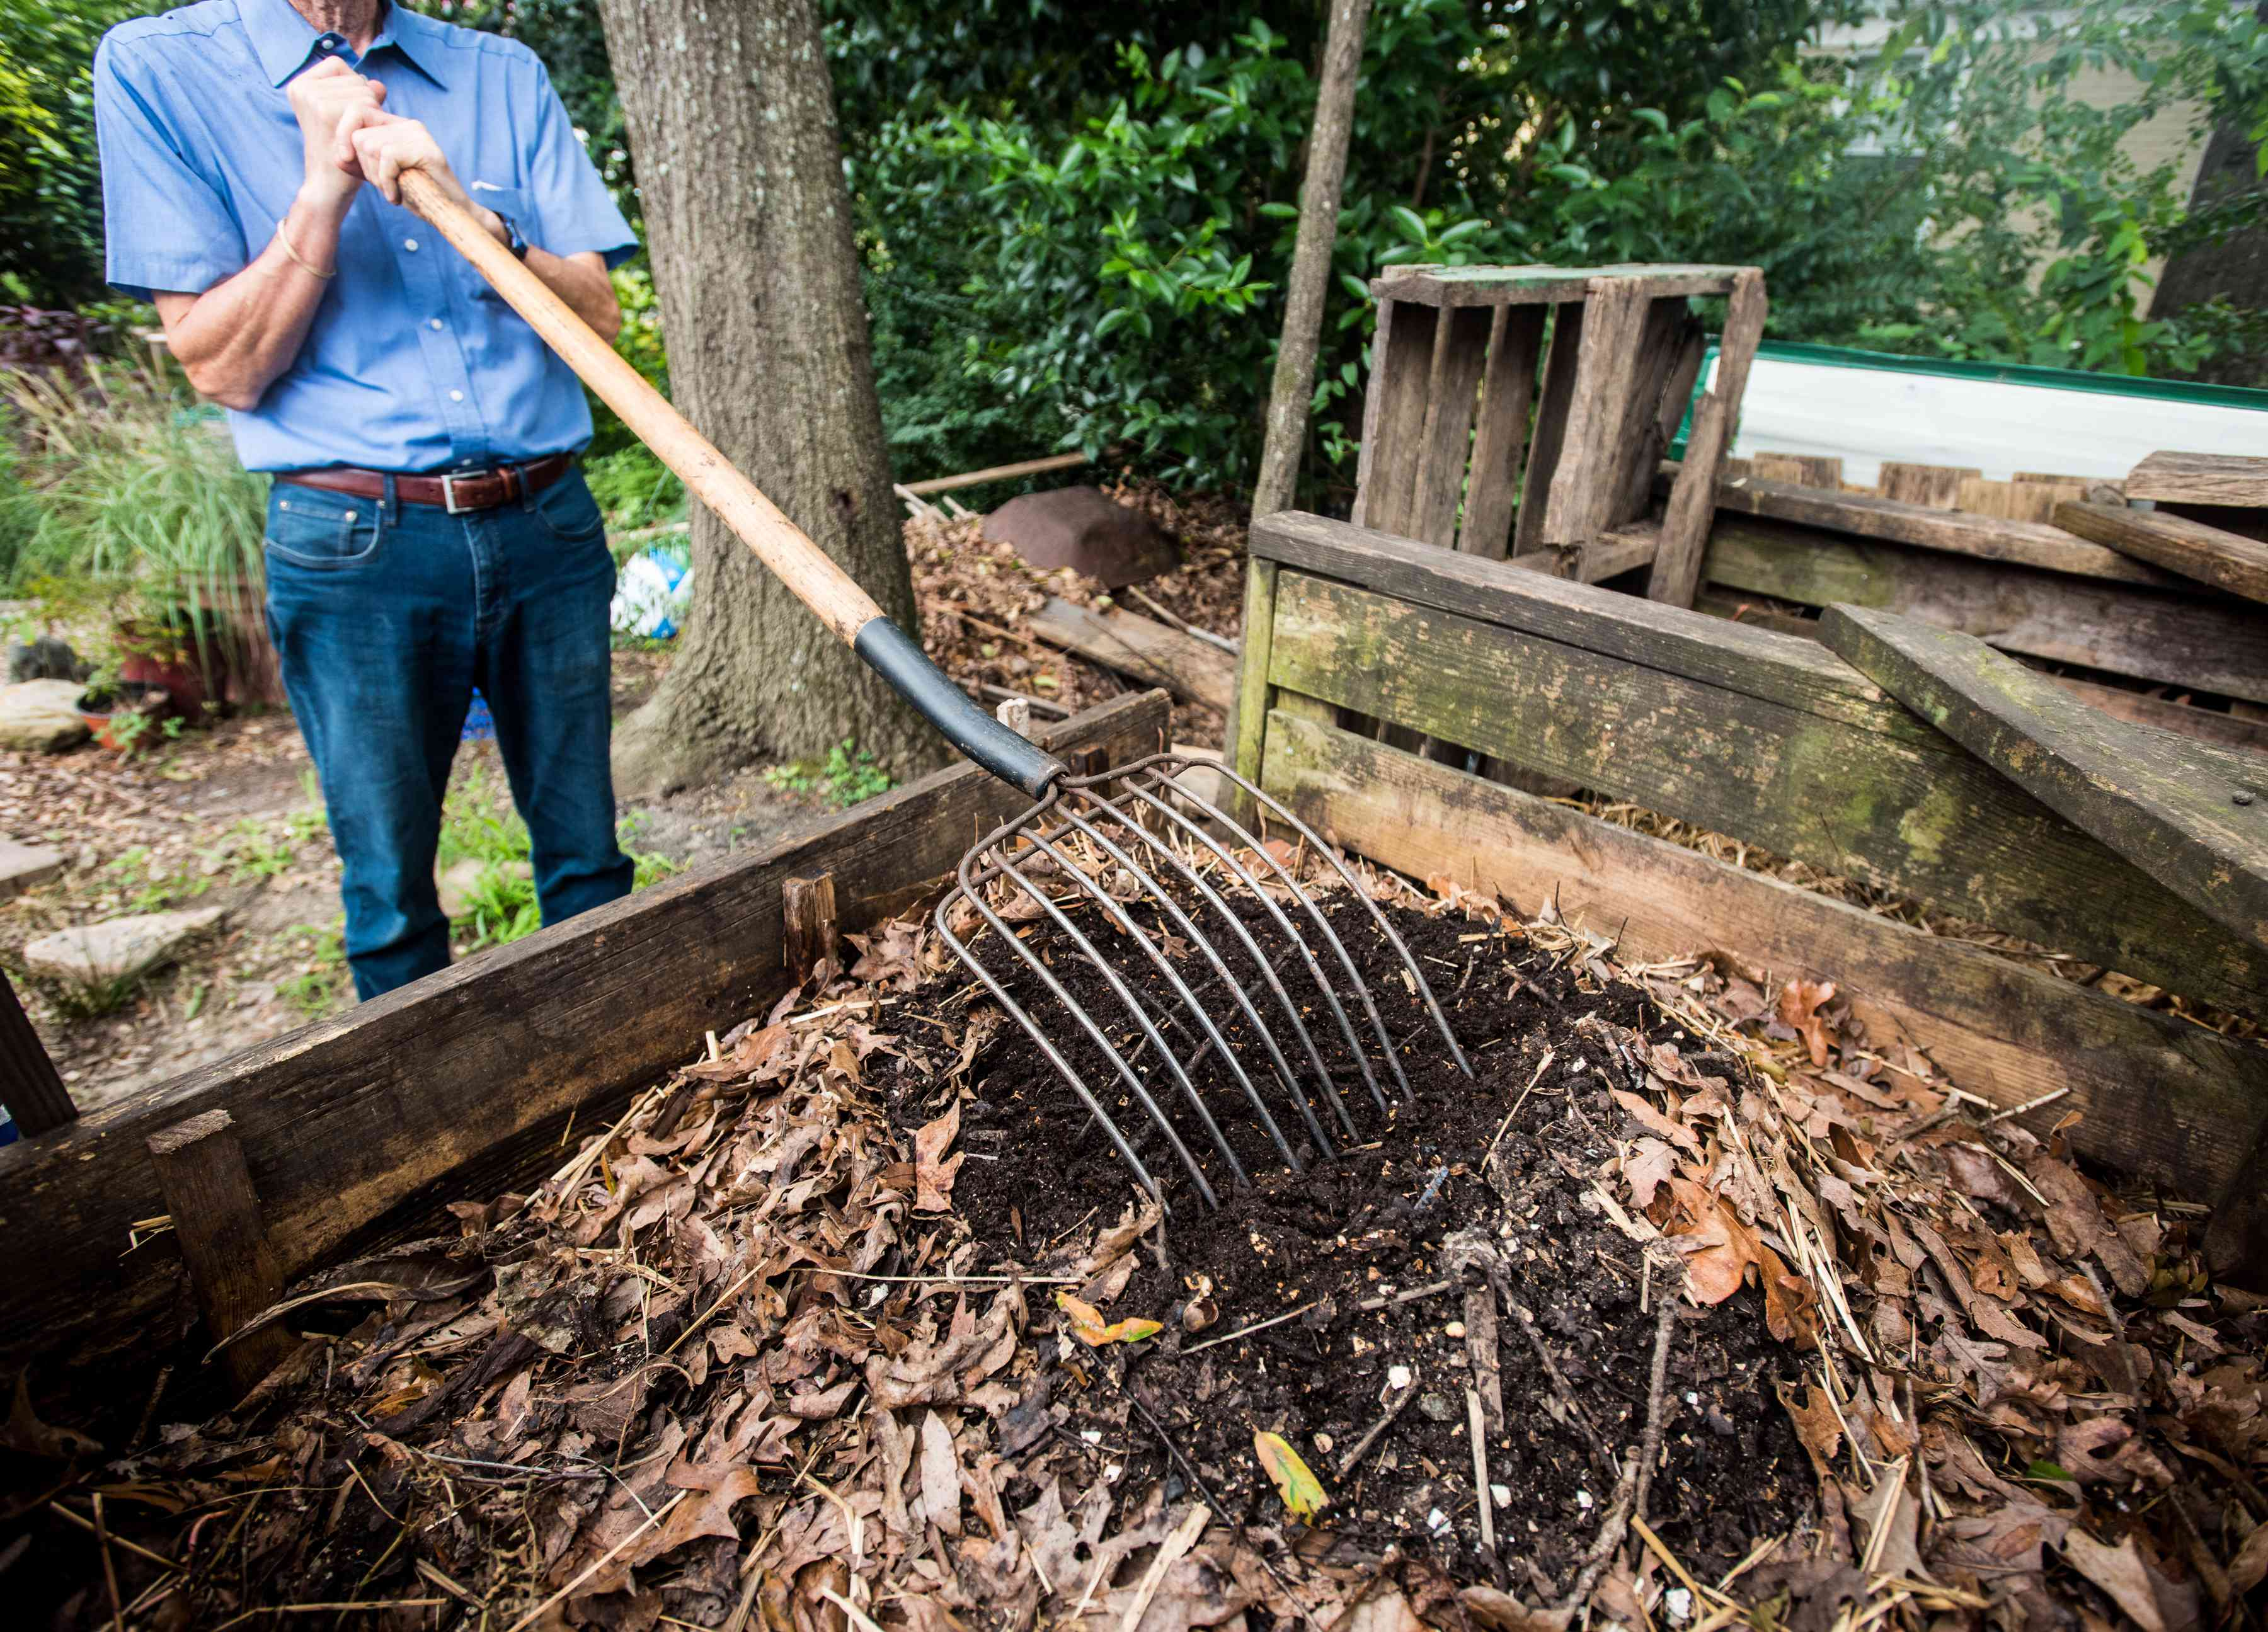 man in jeans holds rake over compost bin